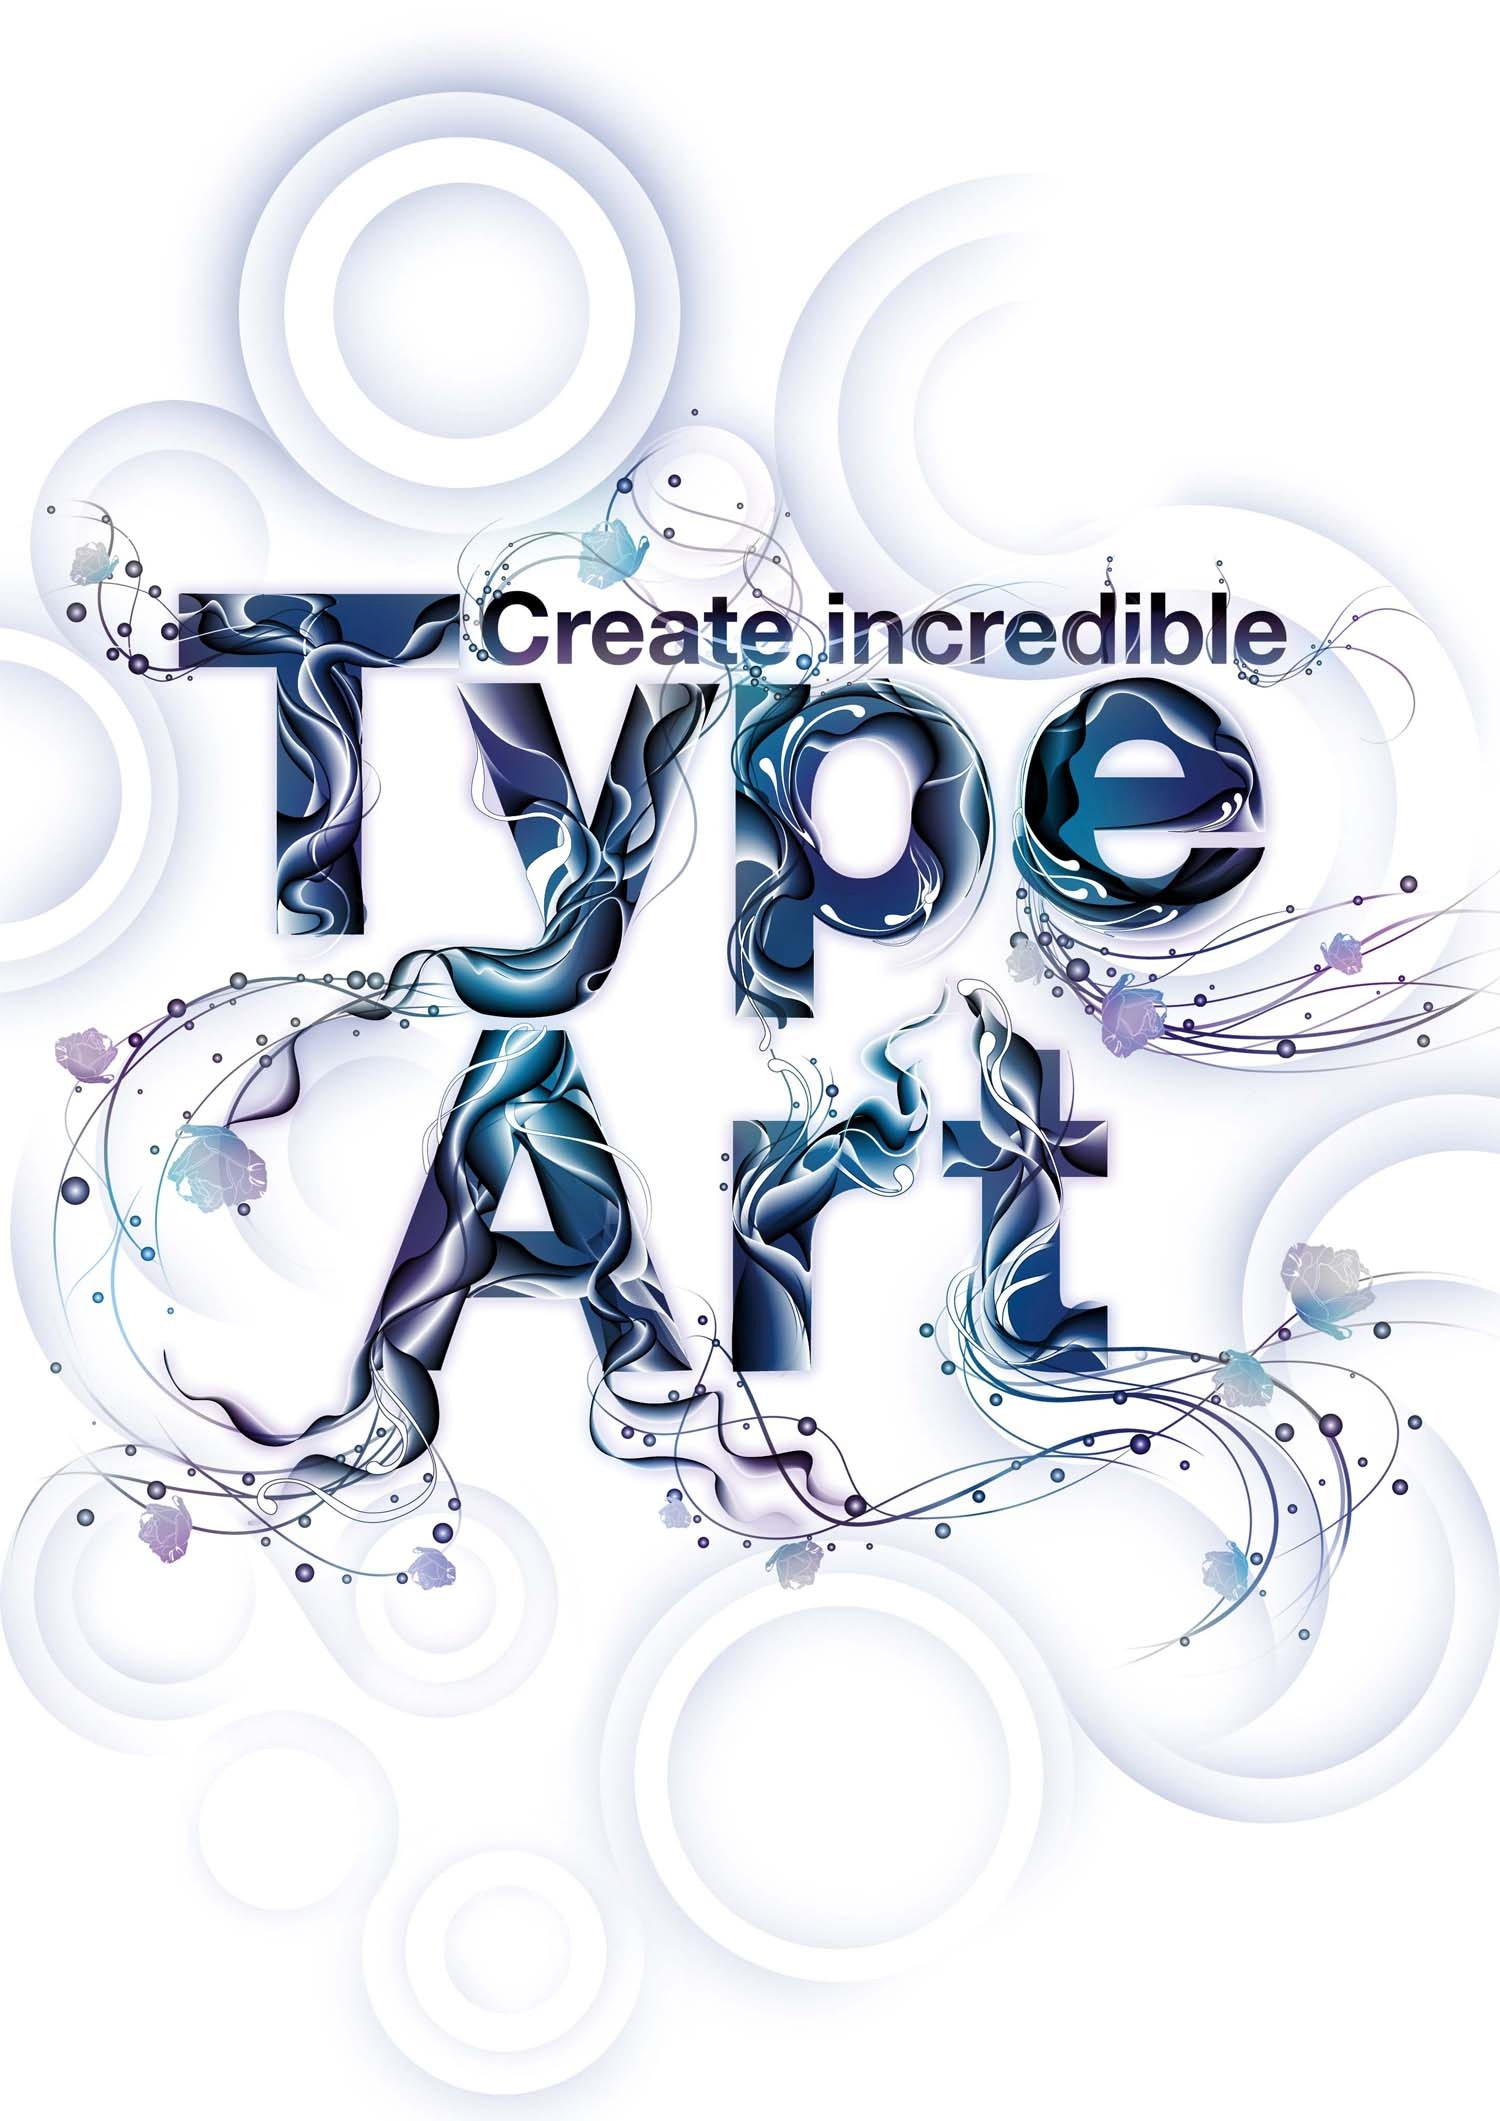 Adobe illustrator photoshop tutorial get started with type art type art is popular currently for all sorts of reasons and its a highly versatile skill to have you can use illustrated lettering in projects ranging baditri Choice Image